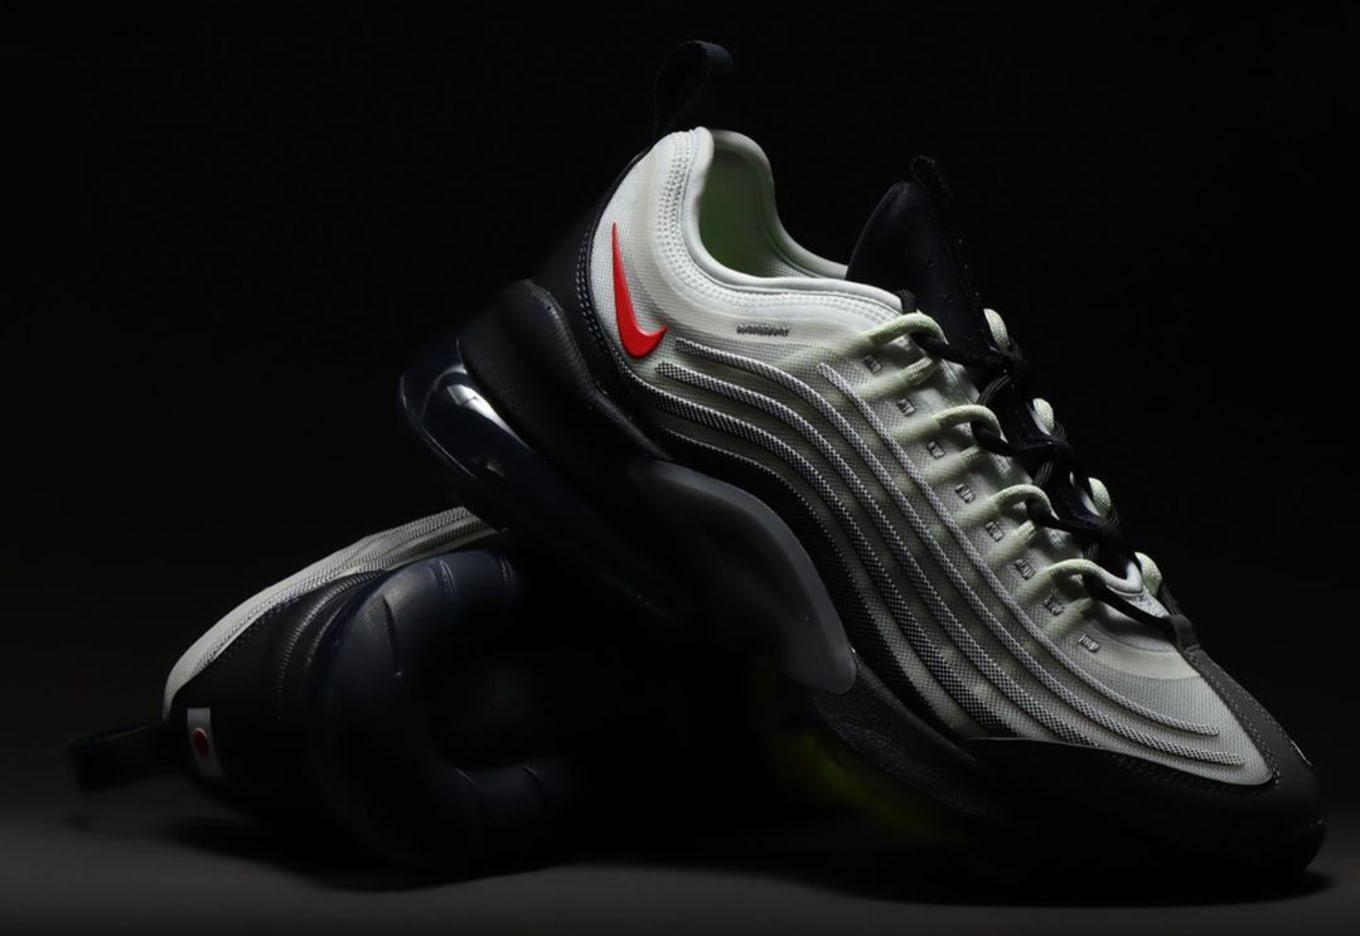 Mejorar musicas cache  Nike Air Max Zoom 950 Release Date CK6852-002 | Sole Collector